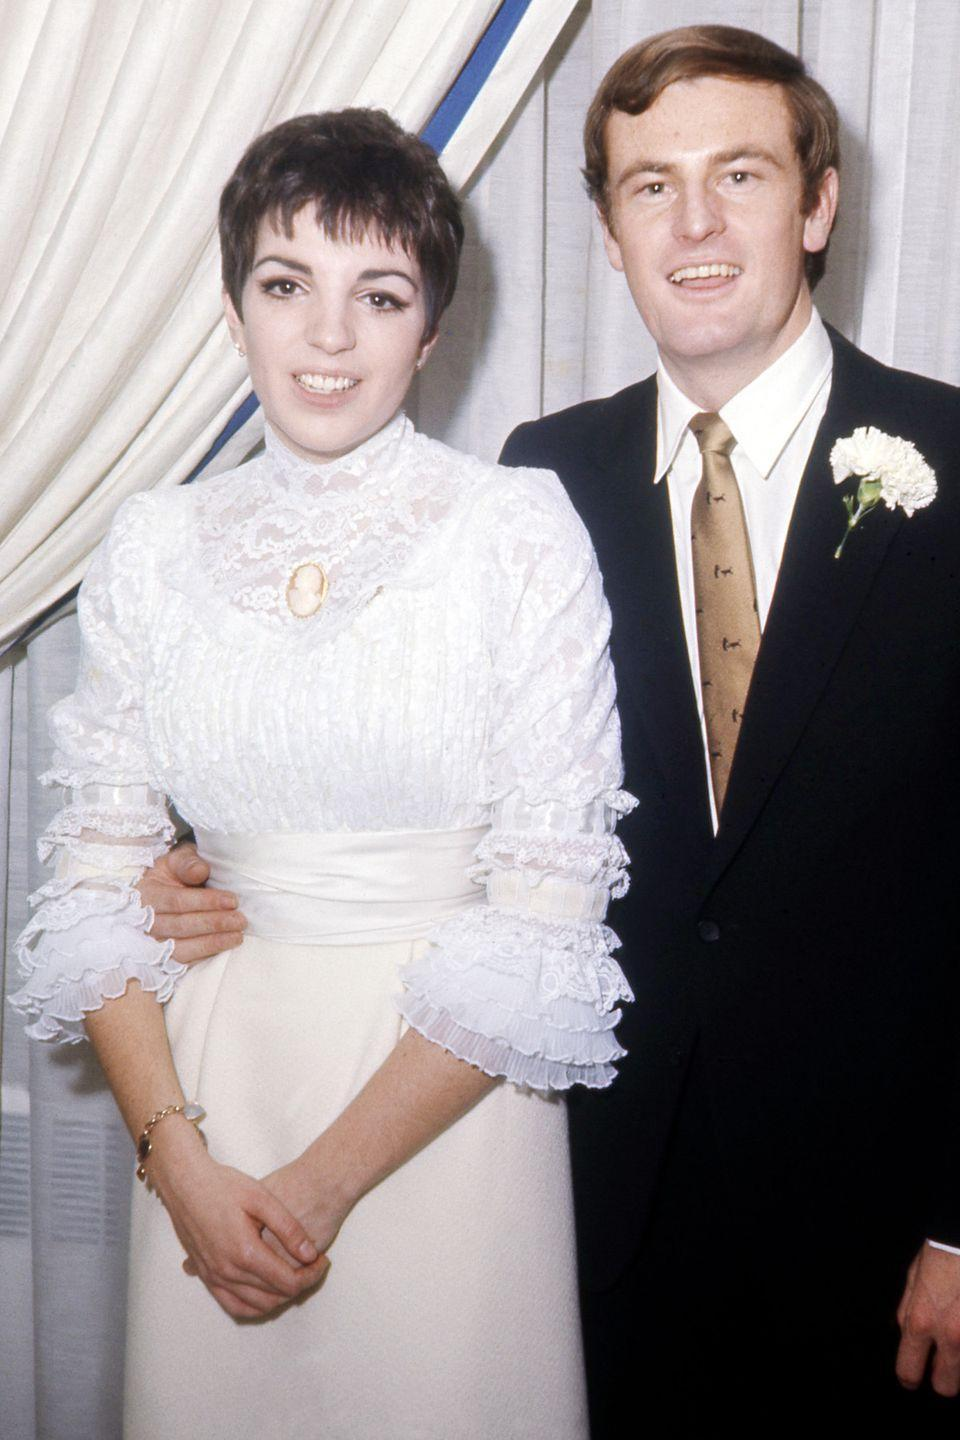 <p>For her first wedding to Peter Allen, Liza Minnelli wore all a white dress ensemble, but with her own flair. The lace blouse with ruffled sleeves and a turtleneck, paired with a sleek cream skirt, was ahead of its time.</p>